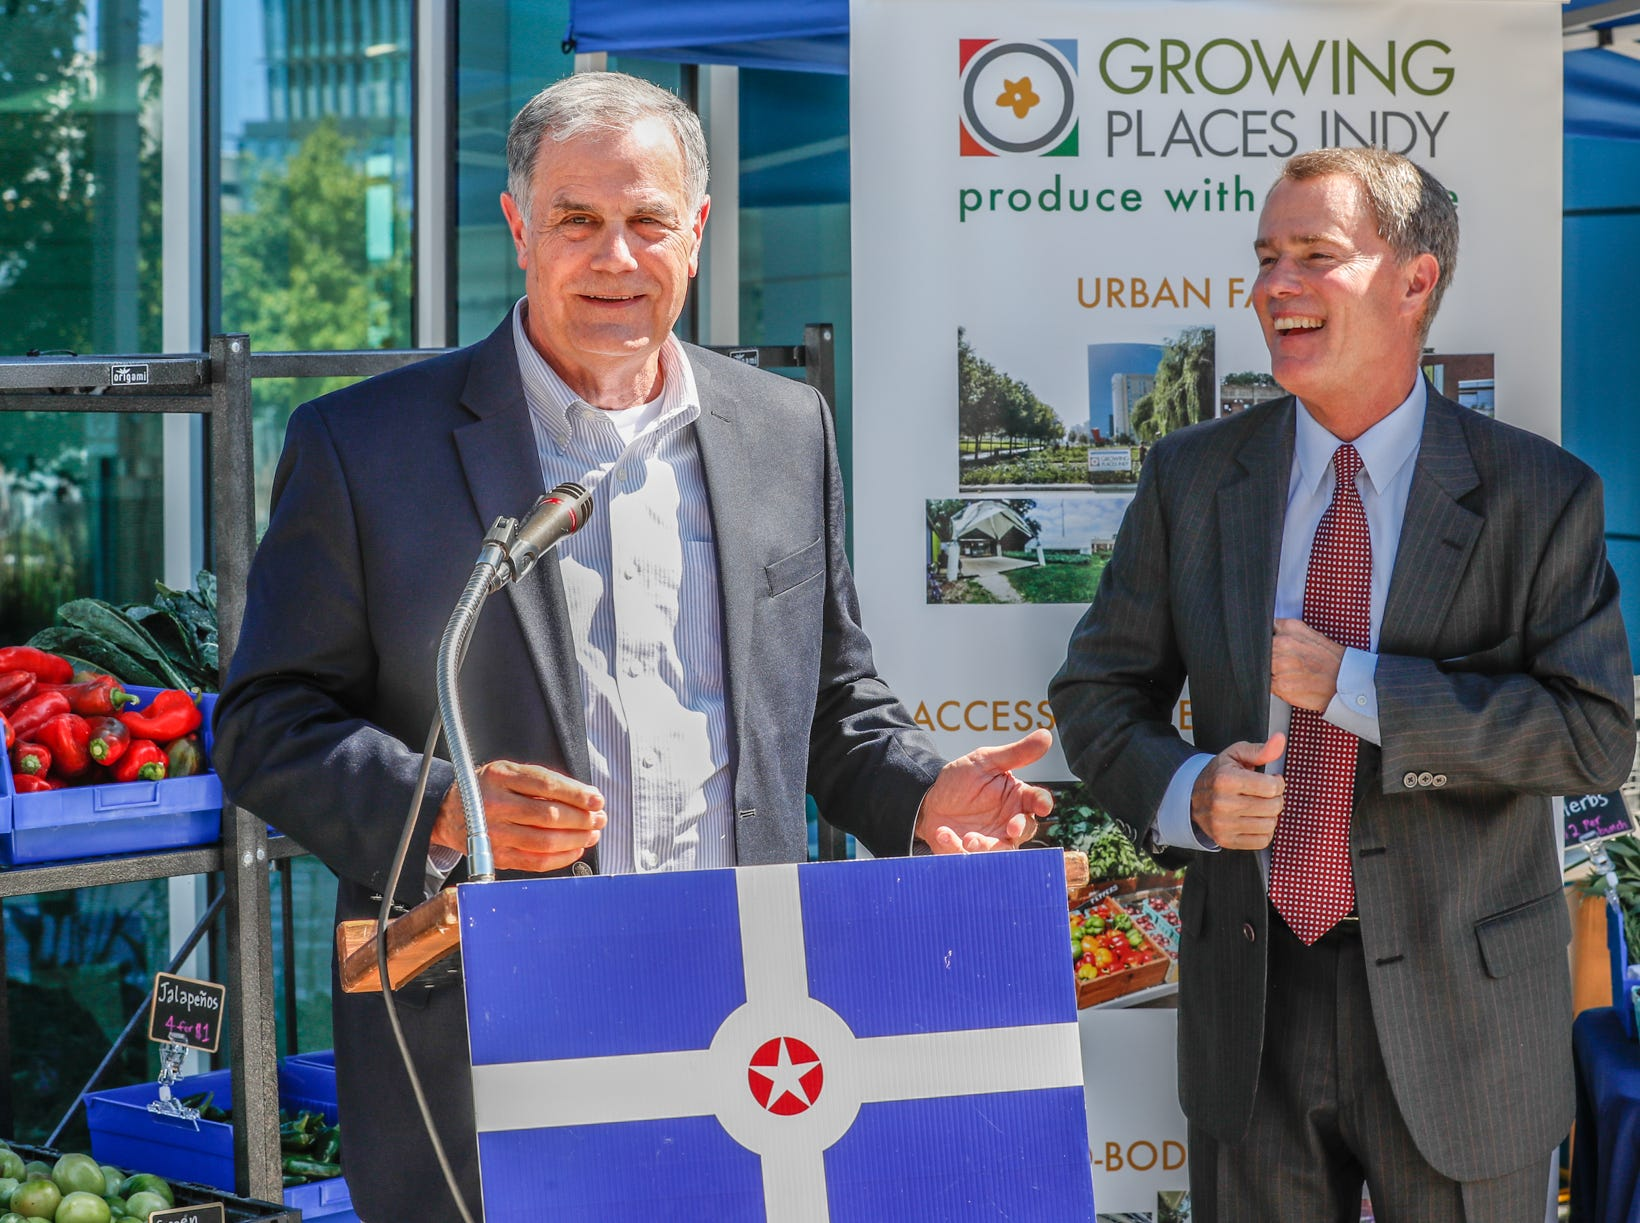 IndyGo President and CEO, Mike Terry and Indianapolis Mayor Joe Hogsett, give remarks in partnership withGrowing Places Indy during the launch of the ÒFood in TransitÓ program at the Julia M. Carson Transit Center on Friday, Sept. 14, 2018. Visitors to the Transit Center can purchase produce every Friday from 3 p.m. to 6 p.m. through October 26.